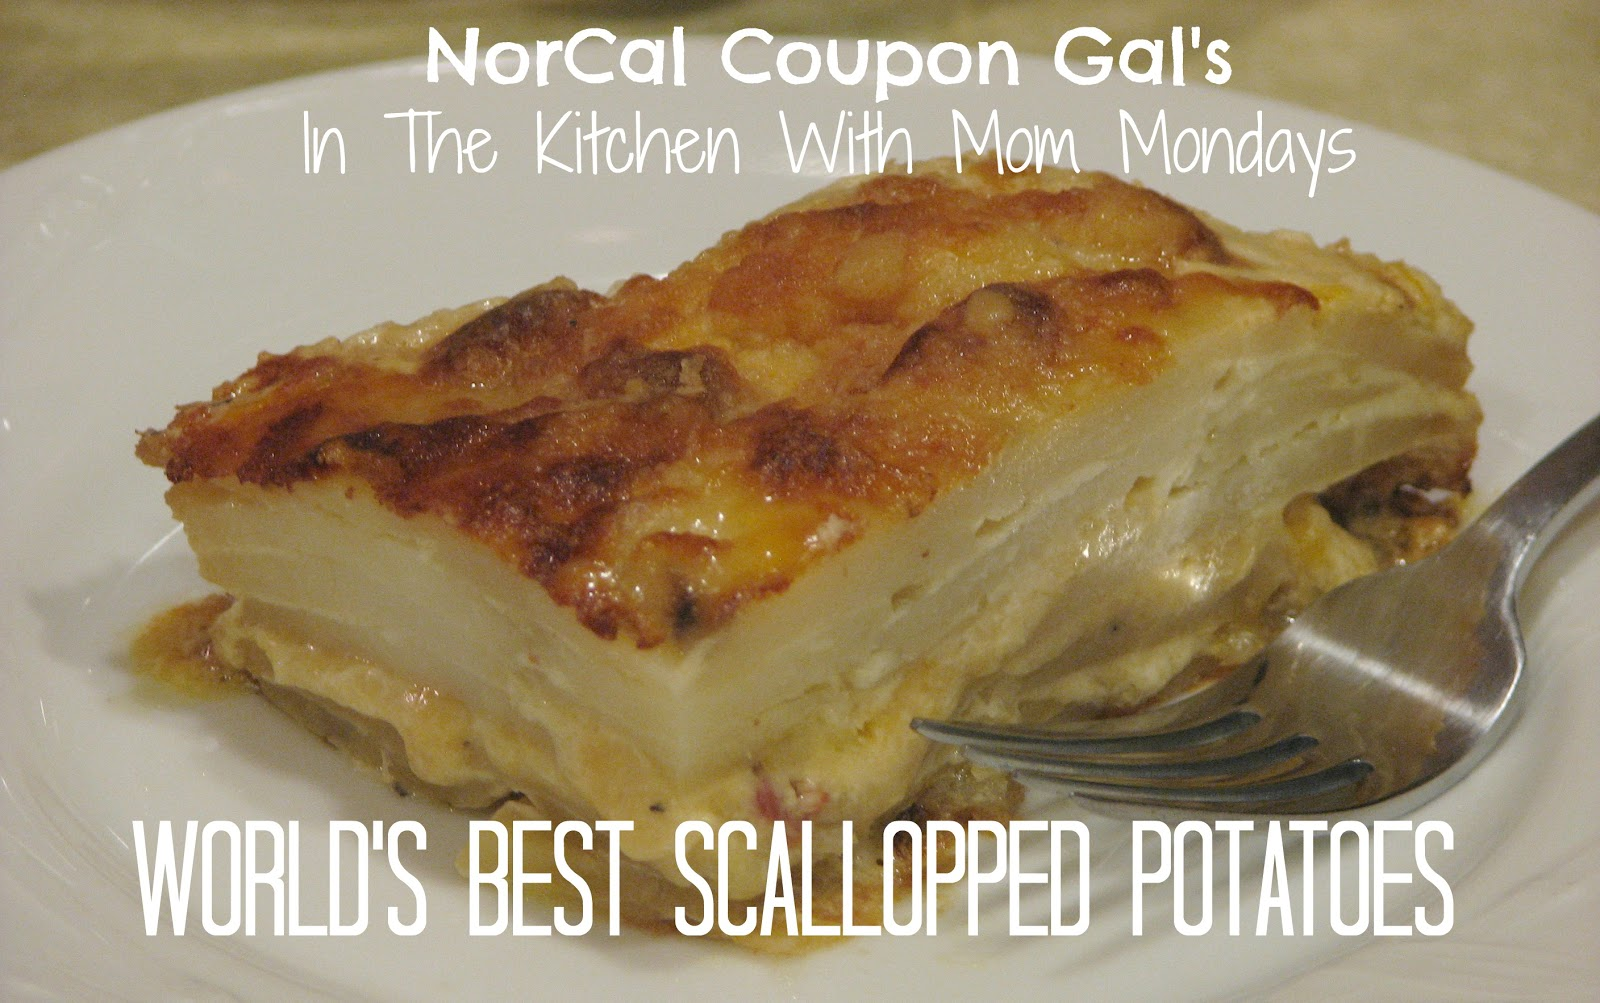 In The Kitchen With Mom Mondays: World's best scallopped potatoes